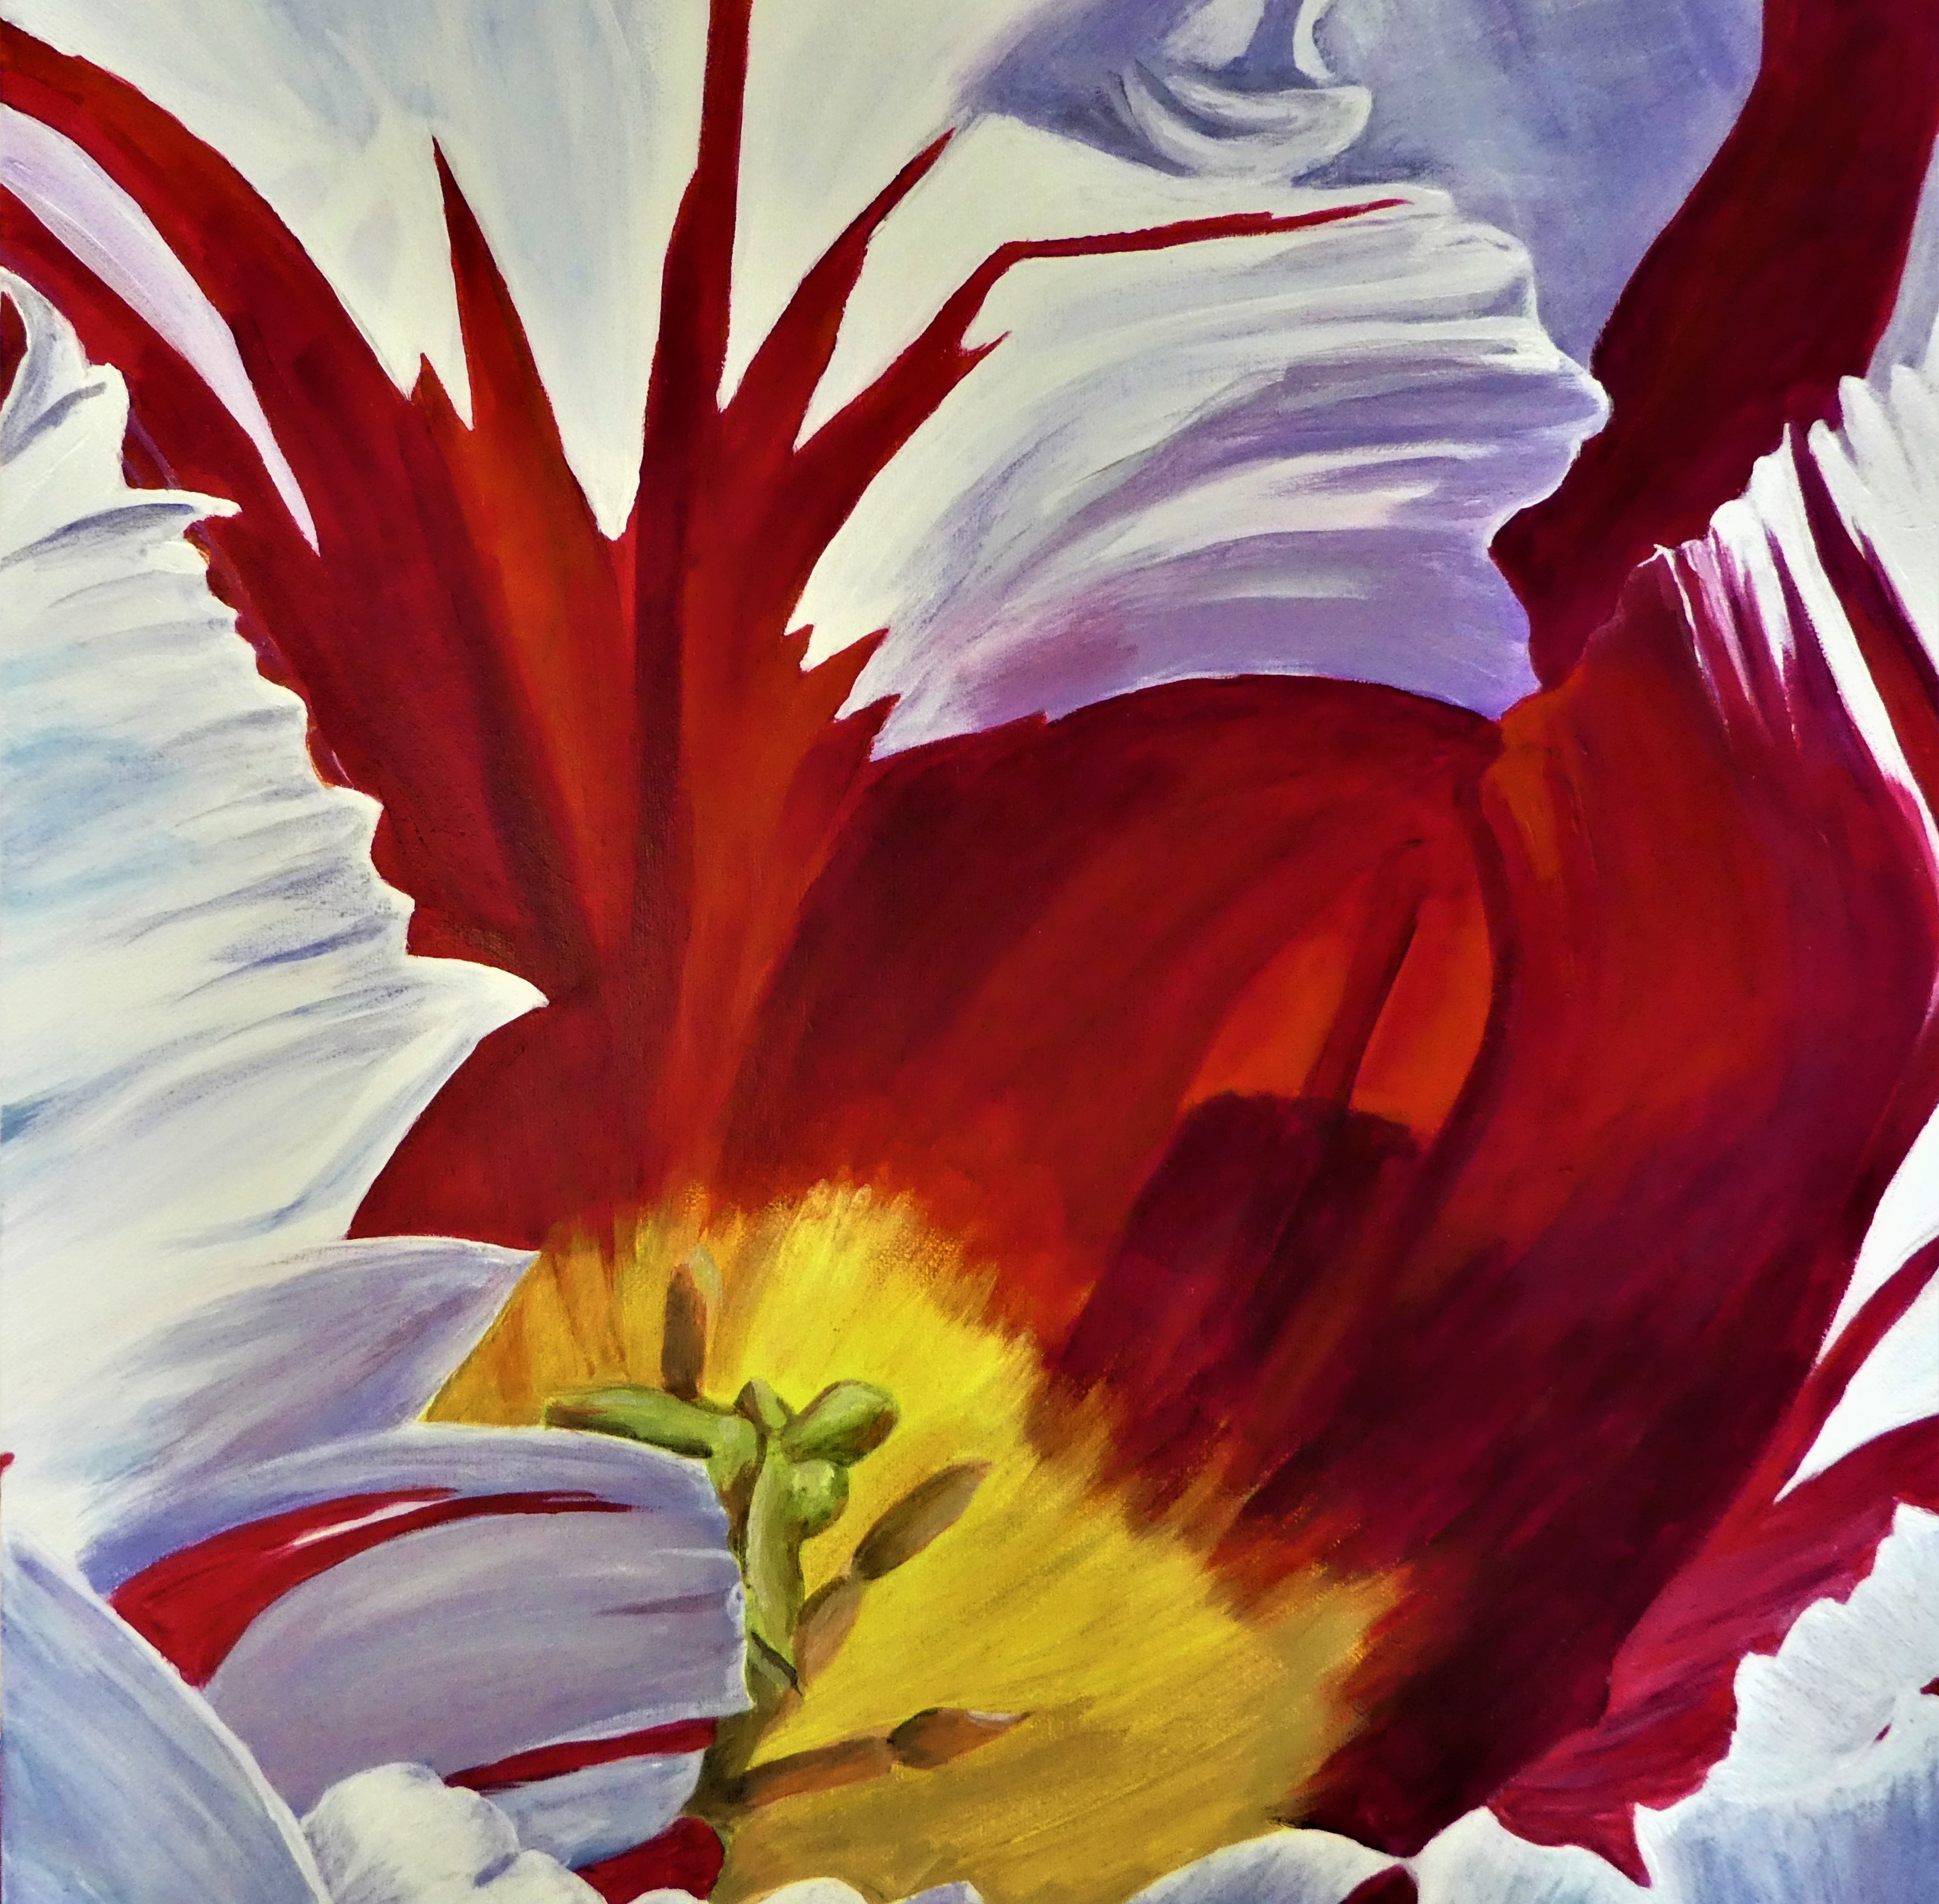 Red and White Tulip by Audrey Bowlin